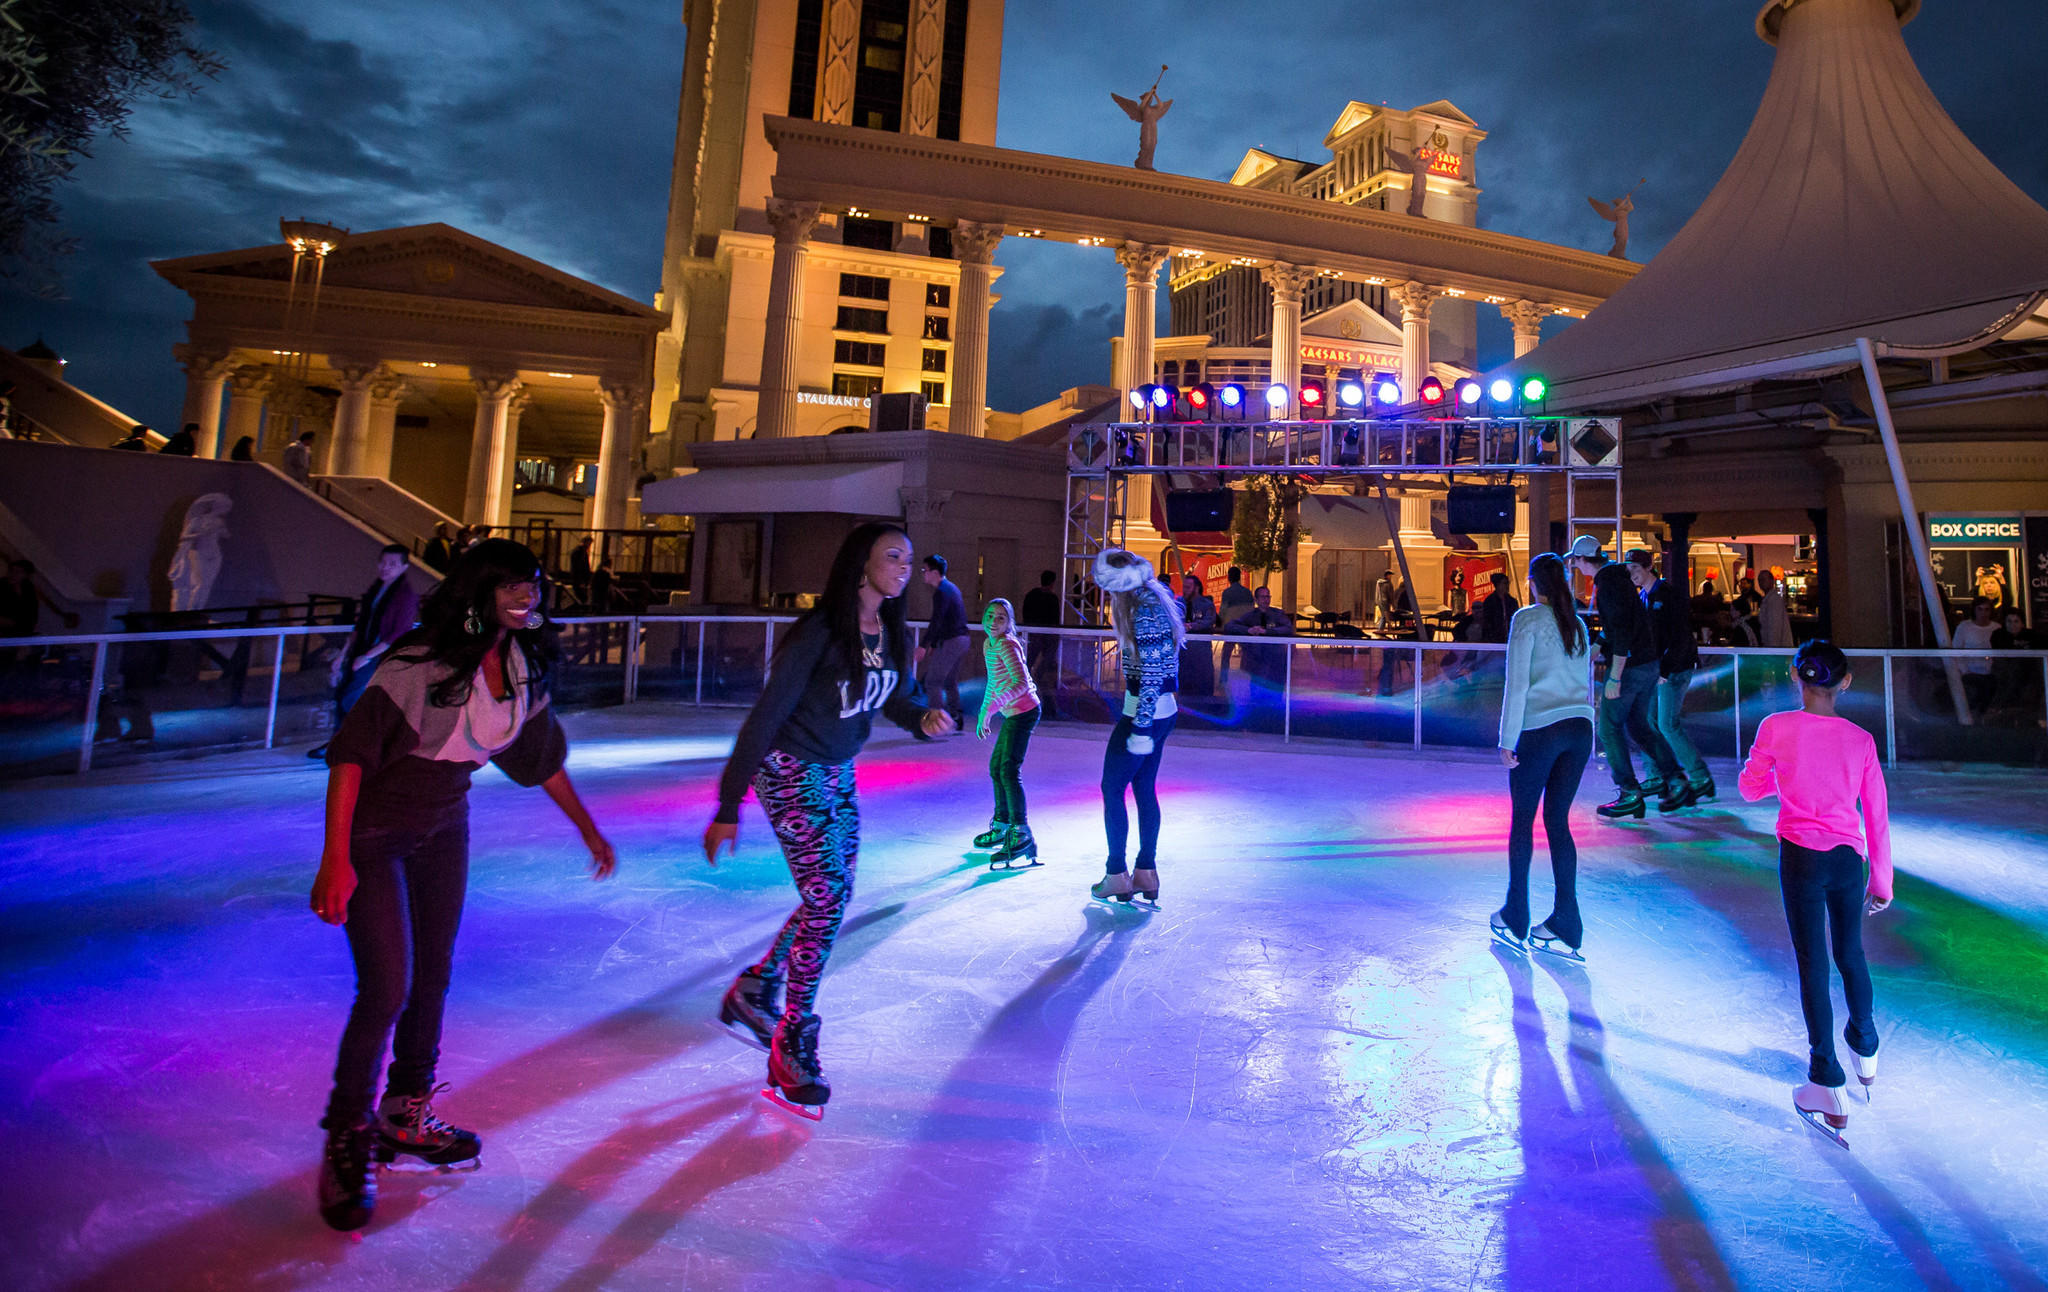 Roller skates las vegas - Despite Temperatures Well Above Freezing Skaters Enjoy A Spin Around The New Ice Rink Outside